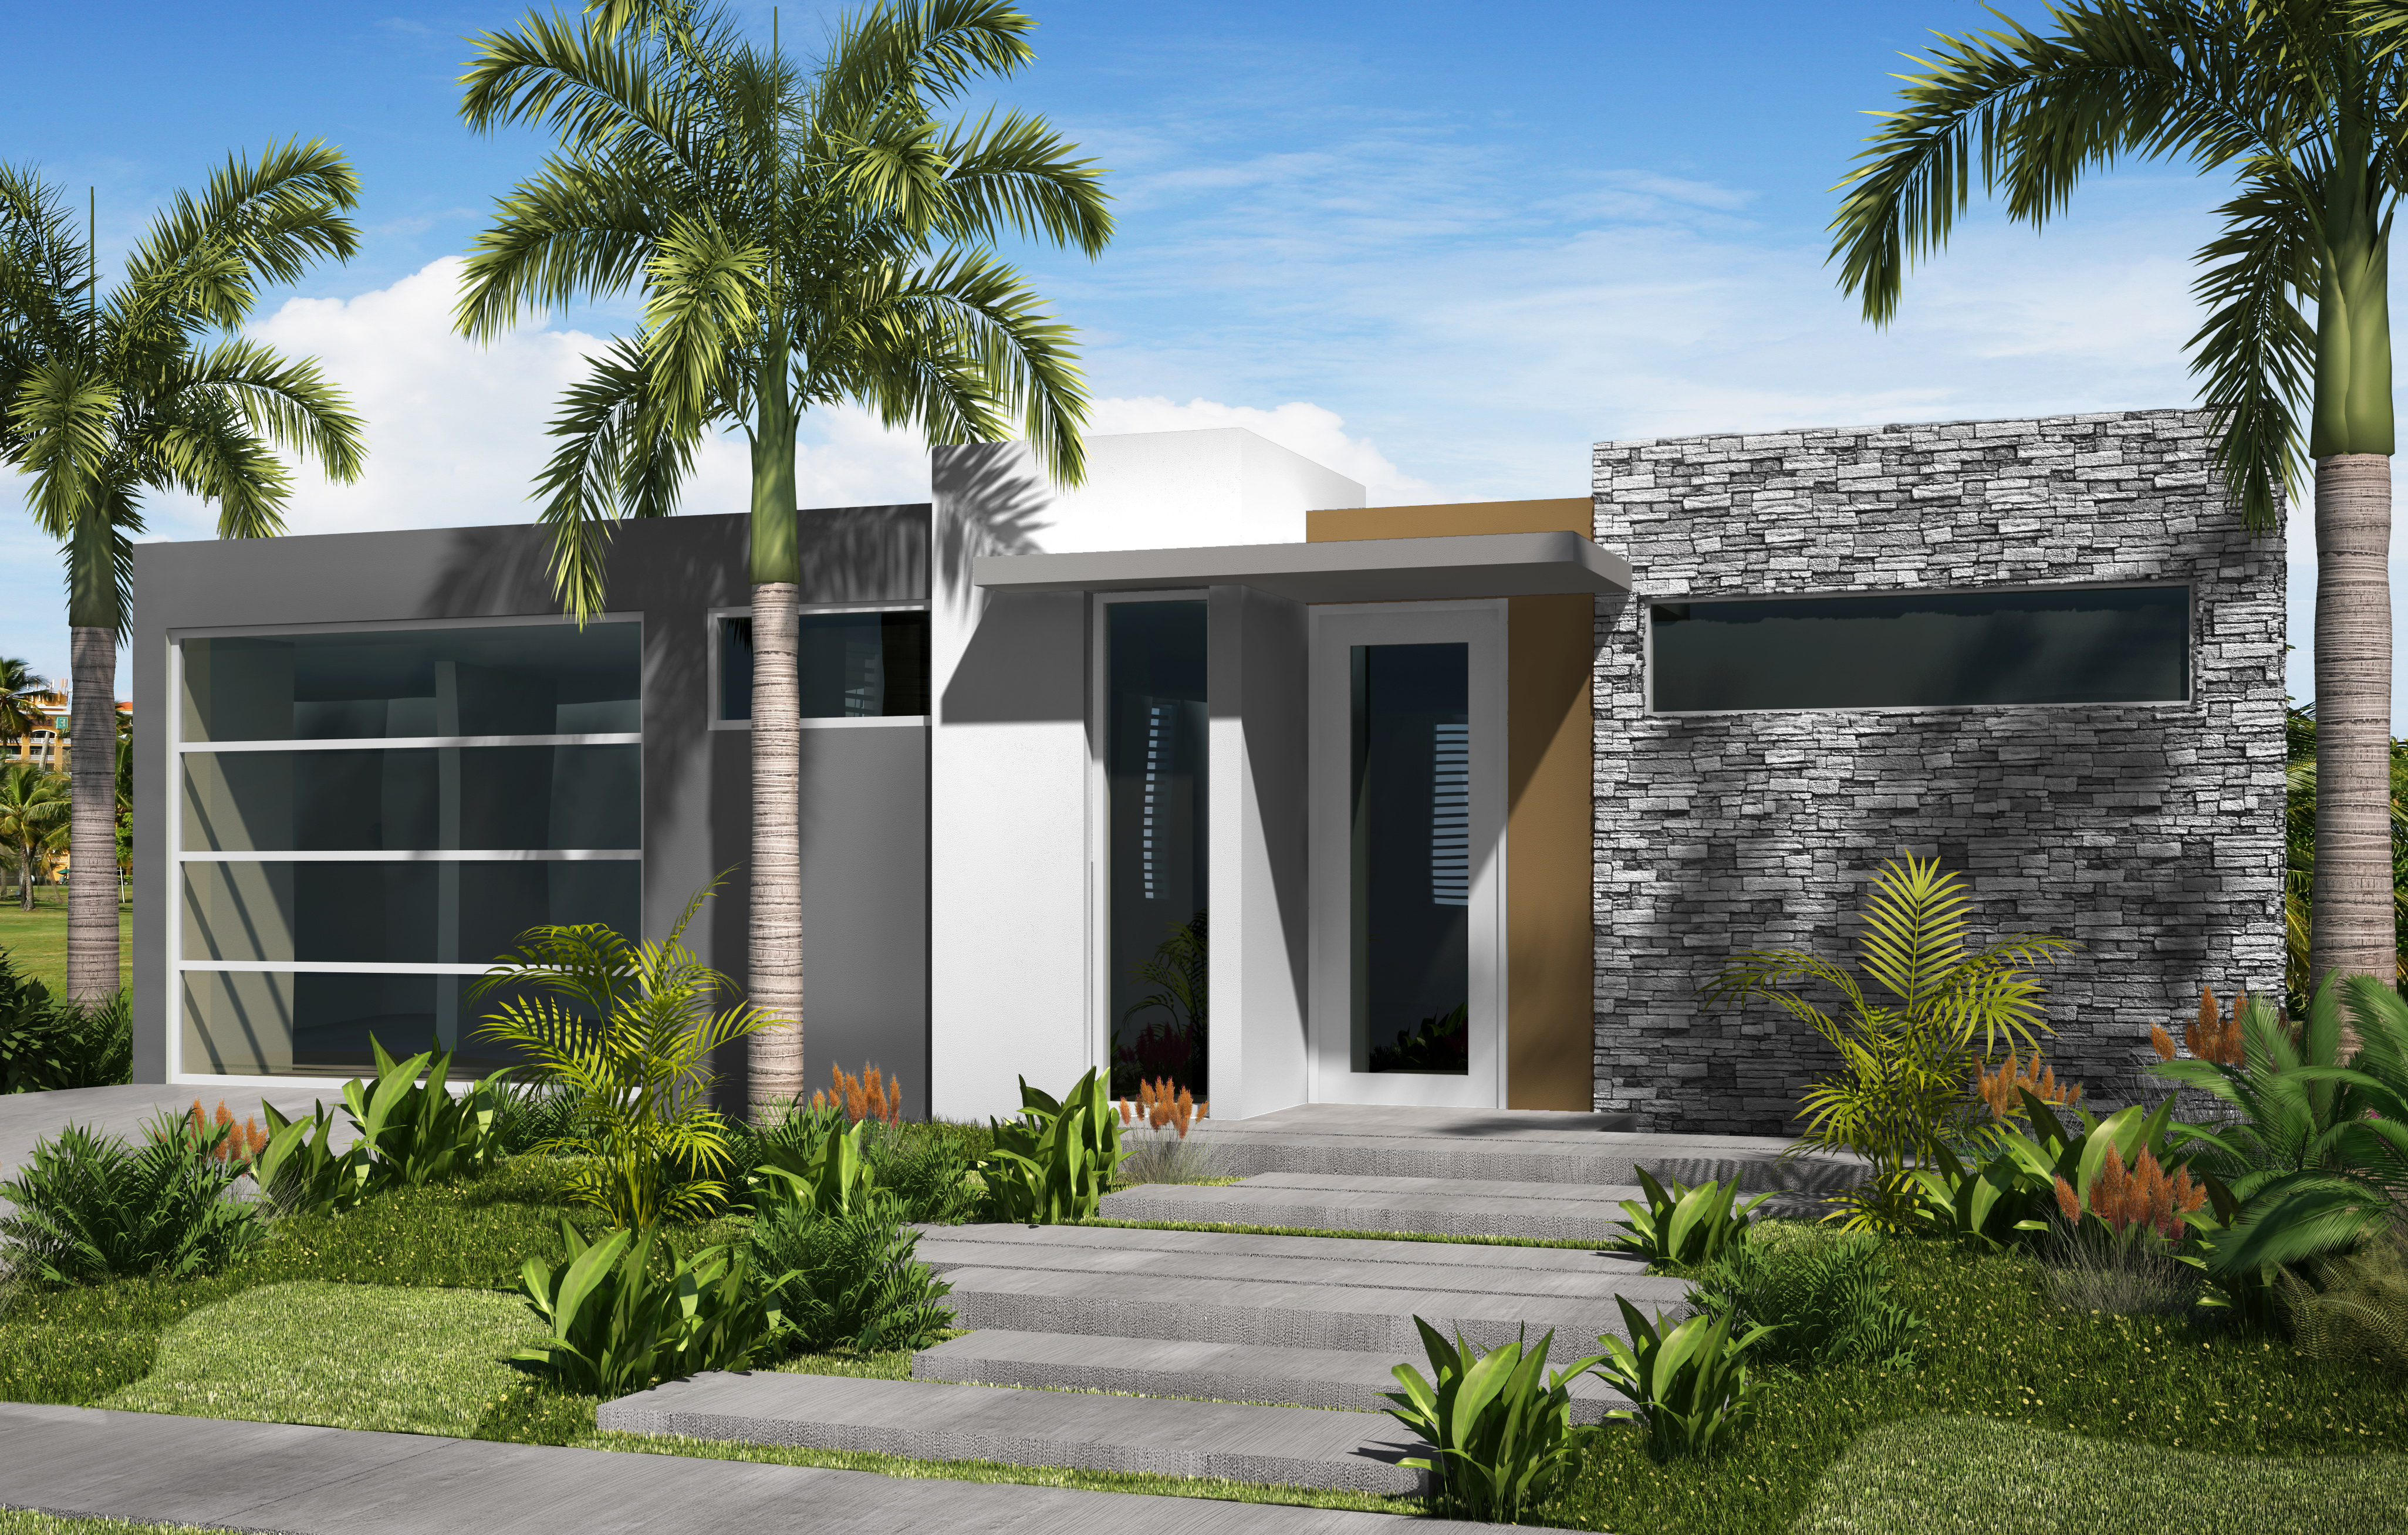 Casas modelos puerto rico pictures to pin on pinterest for Casa modernas